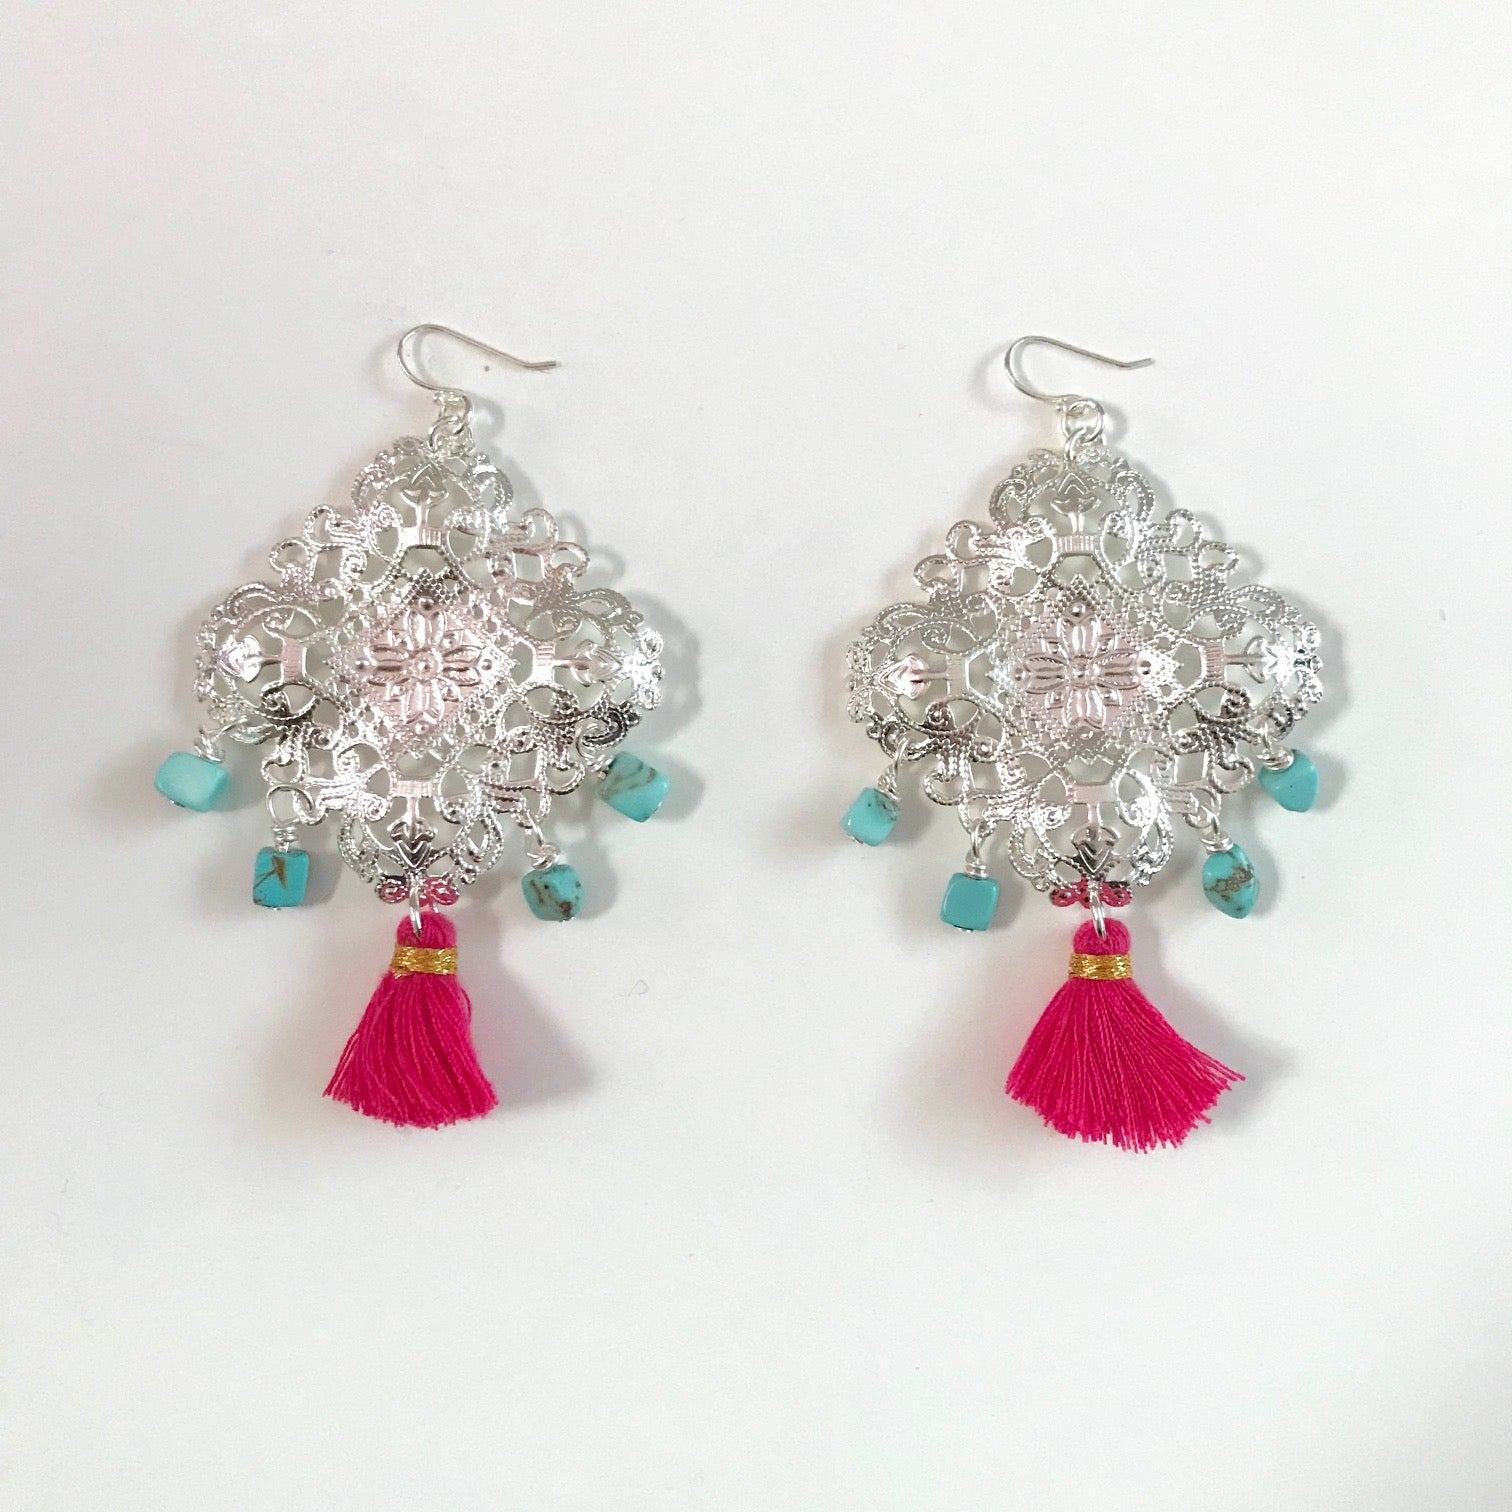 Stargazing Collection - Turquoise Edit - Hot Pink Tassel